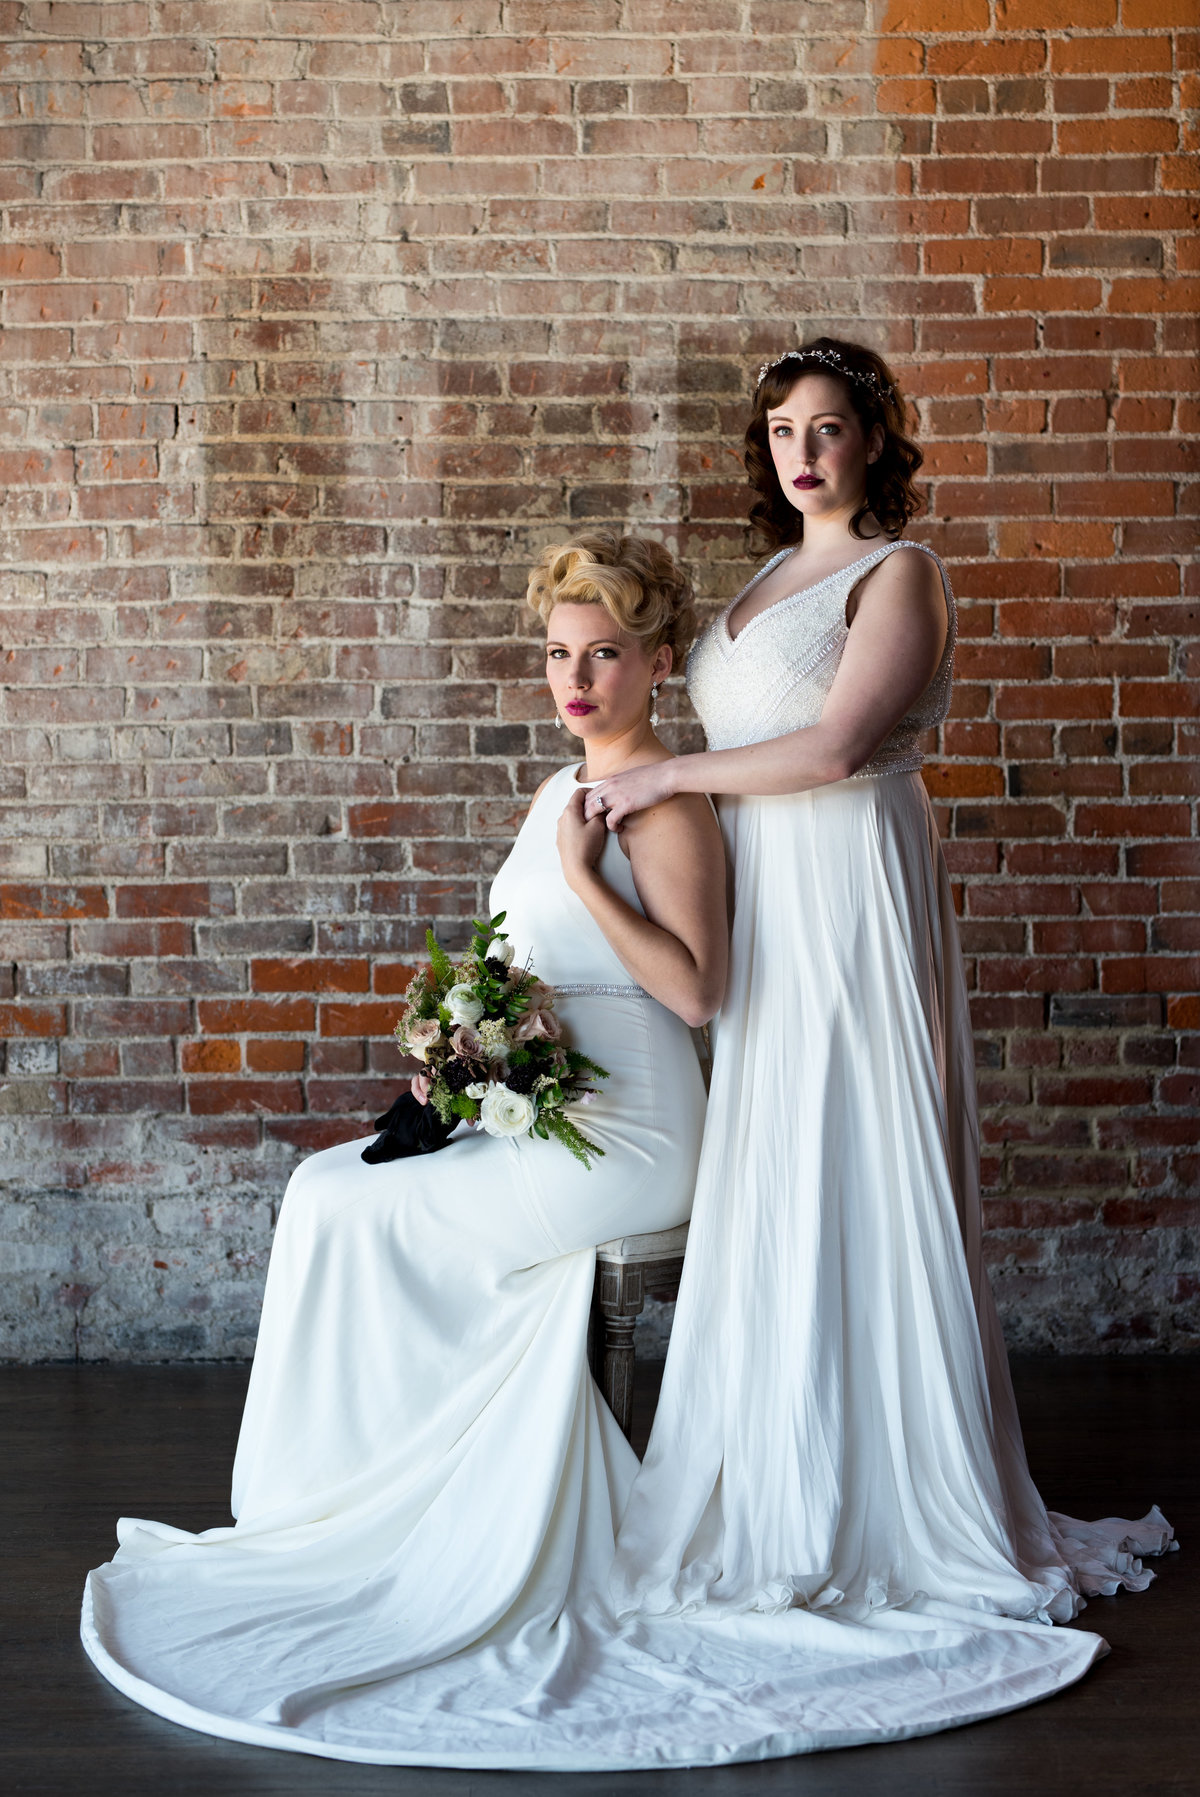 Industrial-Romance-styled-shoot-210